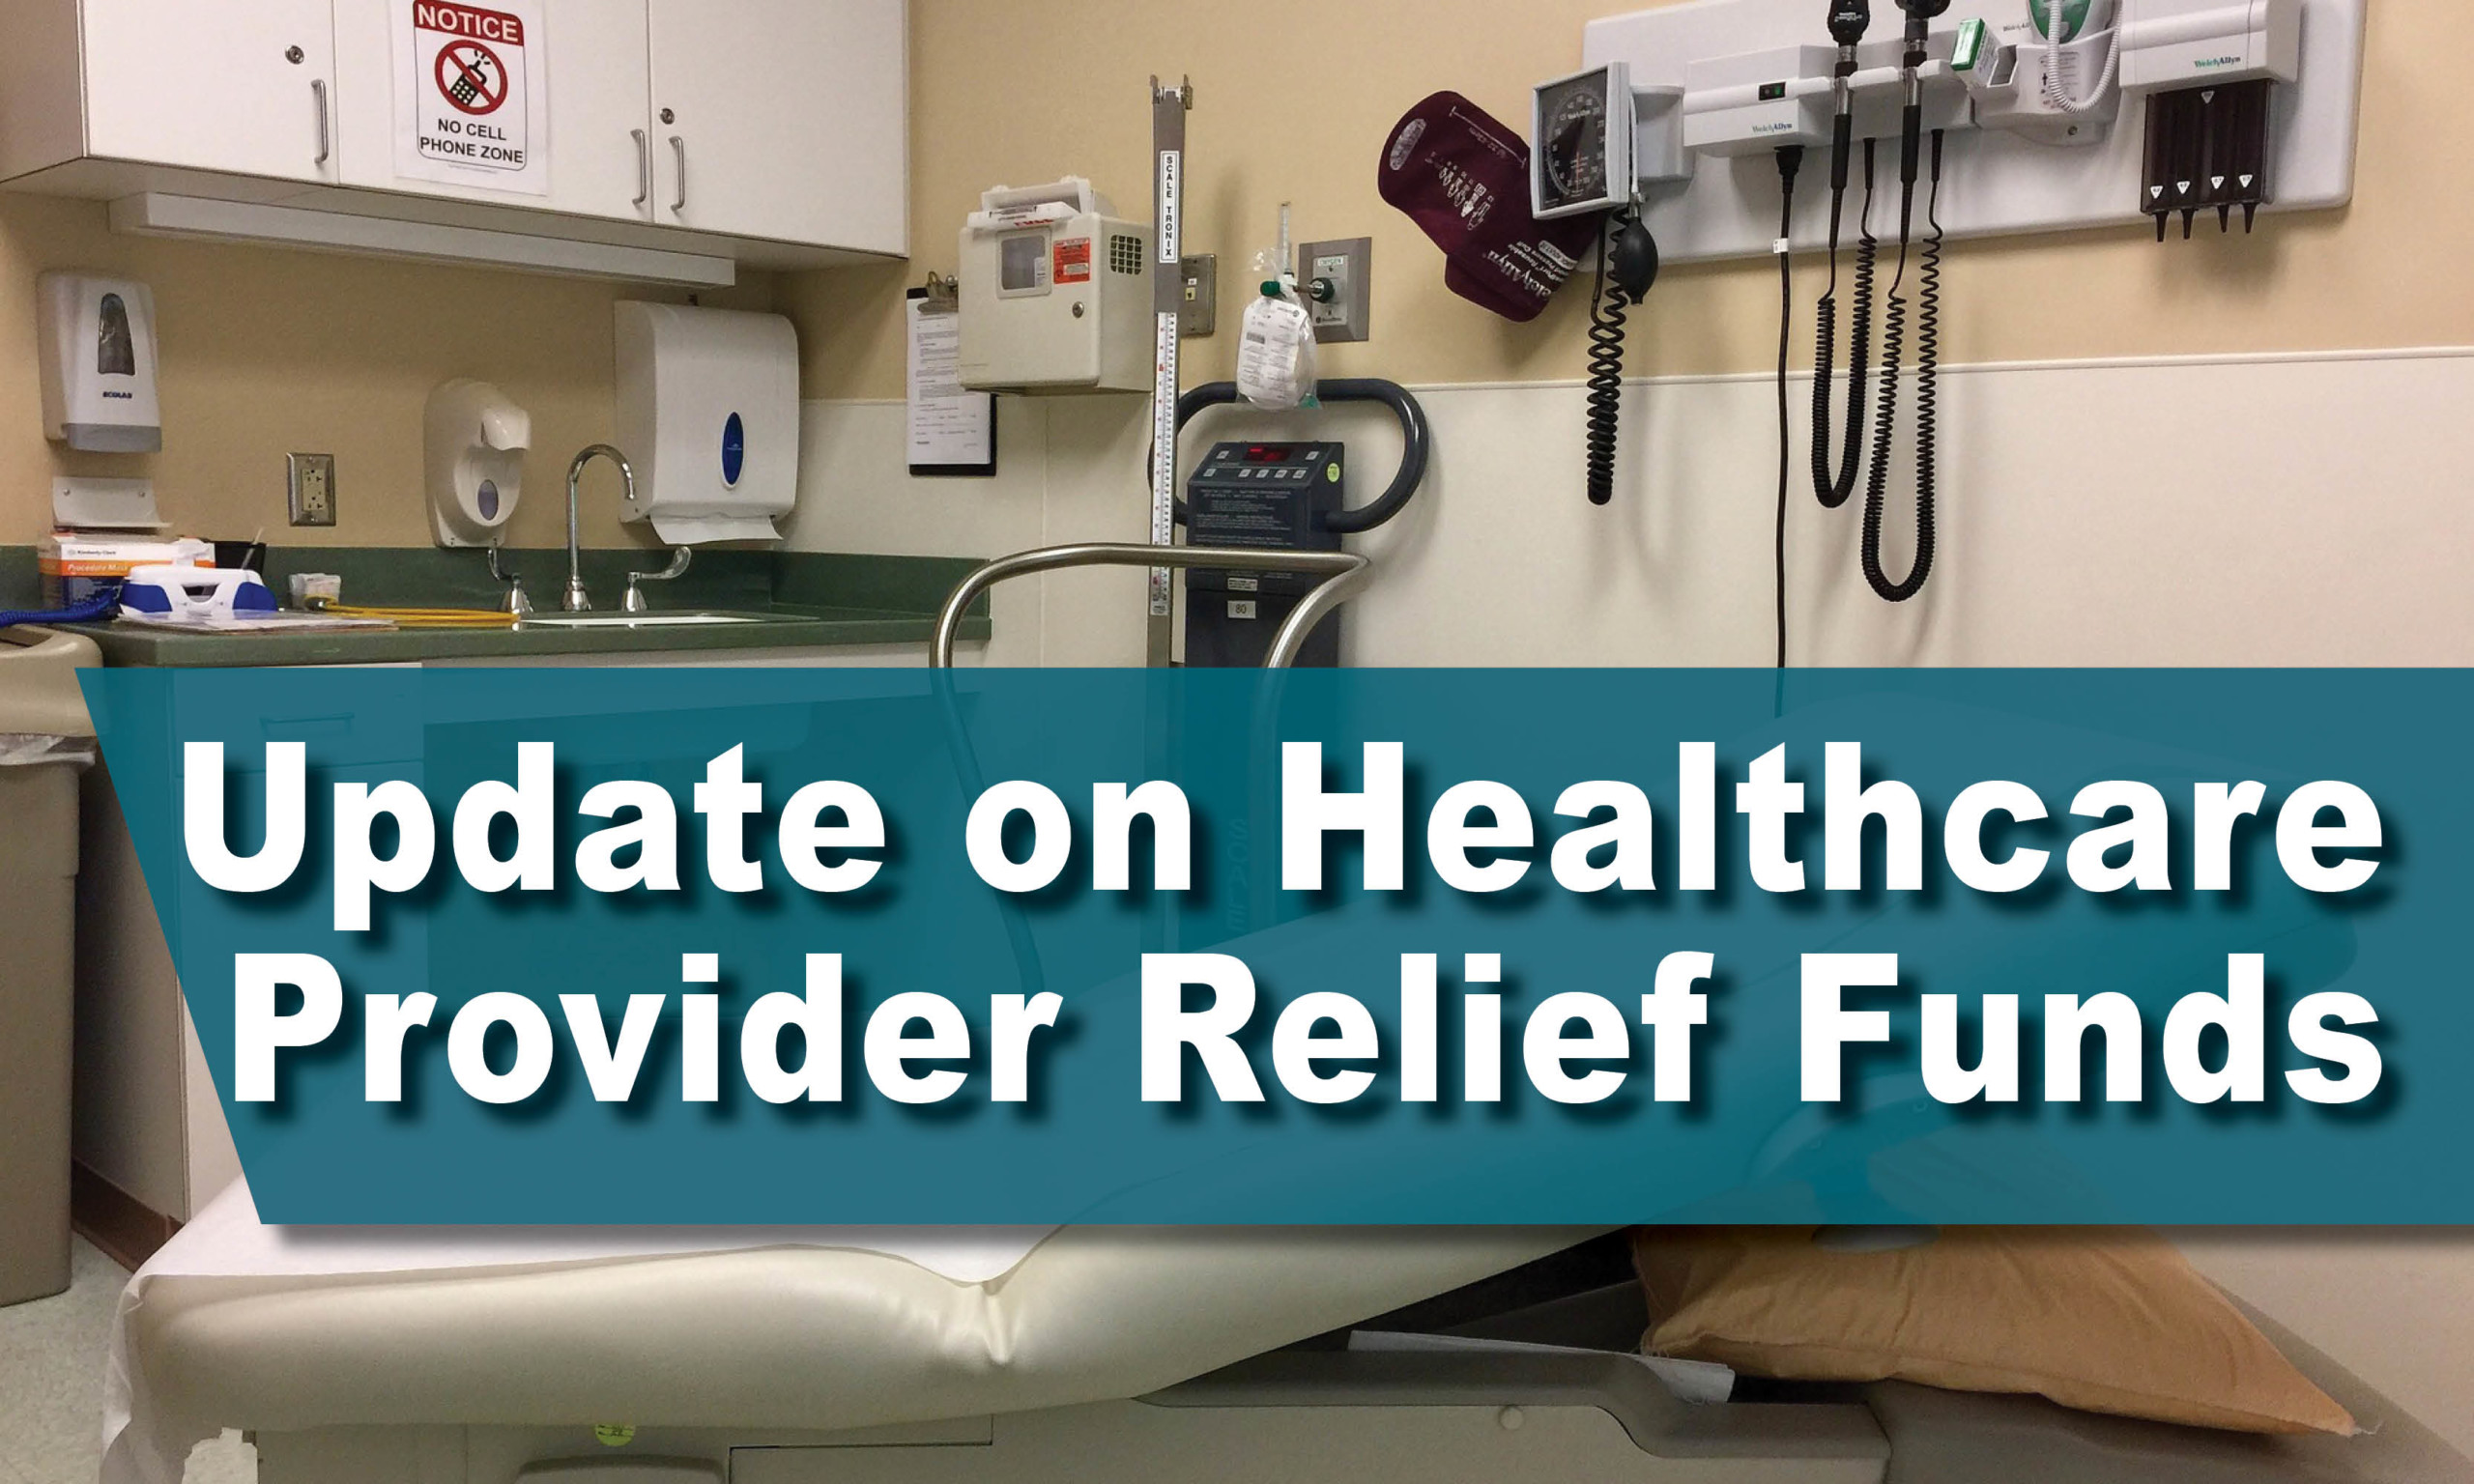 Update on Healthcare Provider Relief Funds